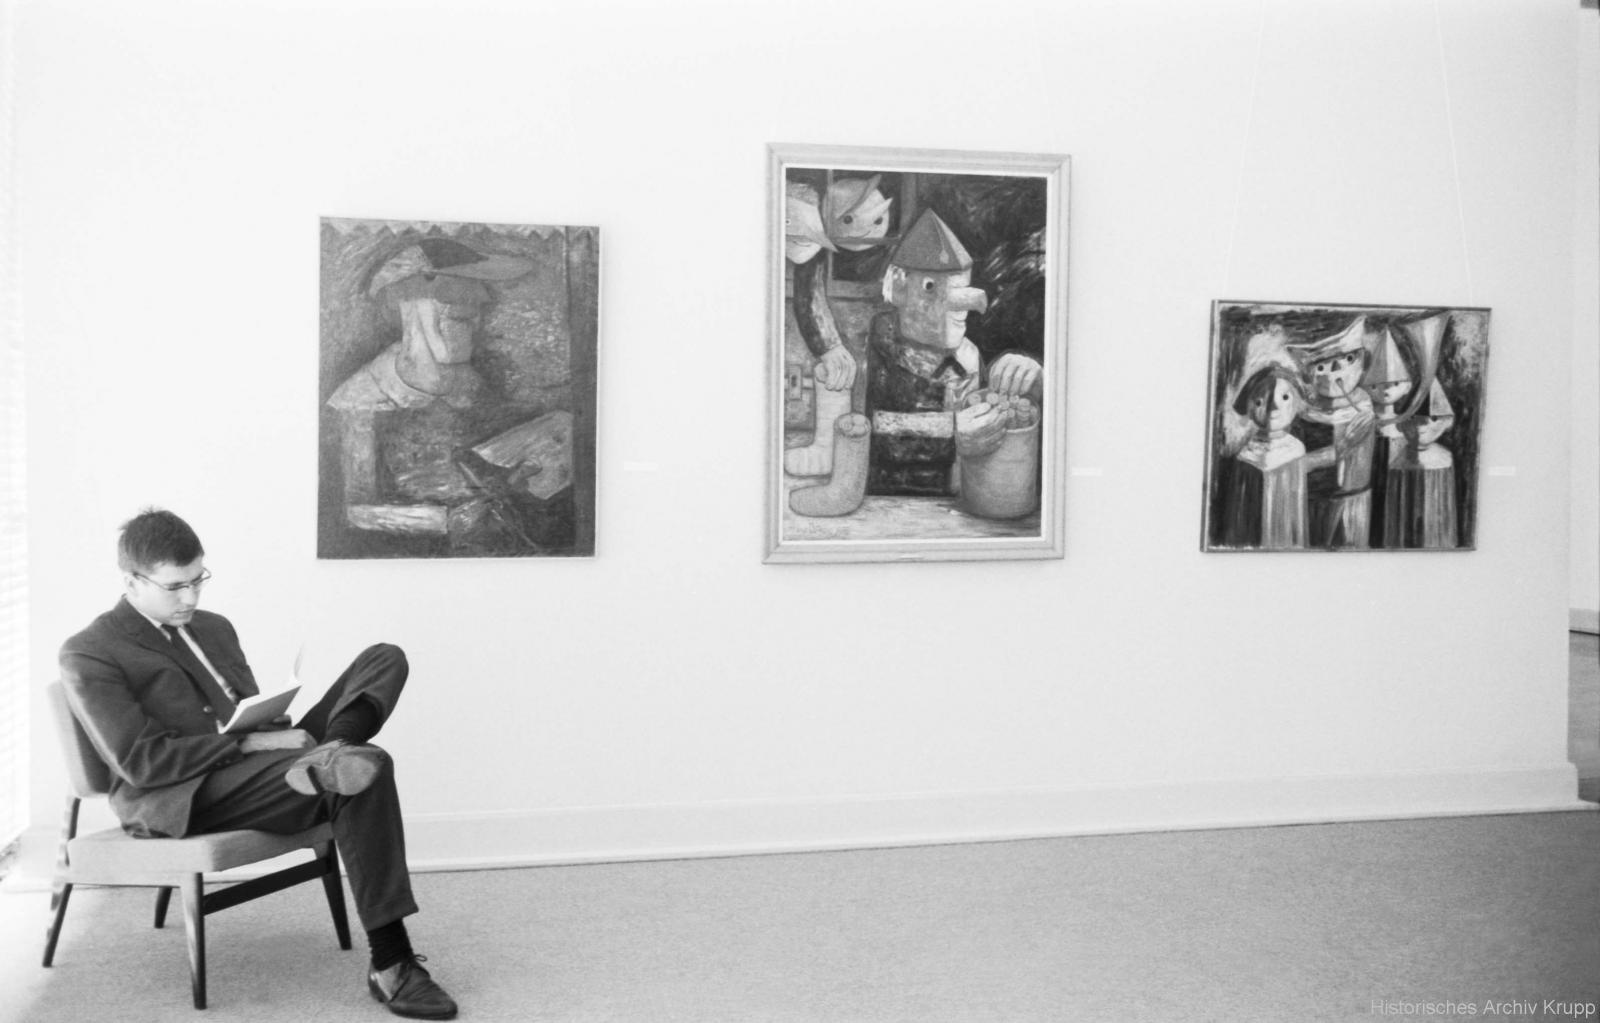 A look inside the exhibition with works by Tadeusz Makowski (1882-1932).(l. to r. Self Portrait, 1930; Miser, 1932; Four Children with a Trombone, 1929.